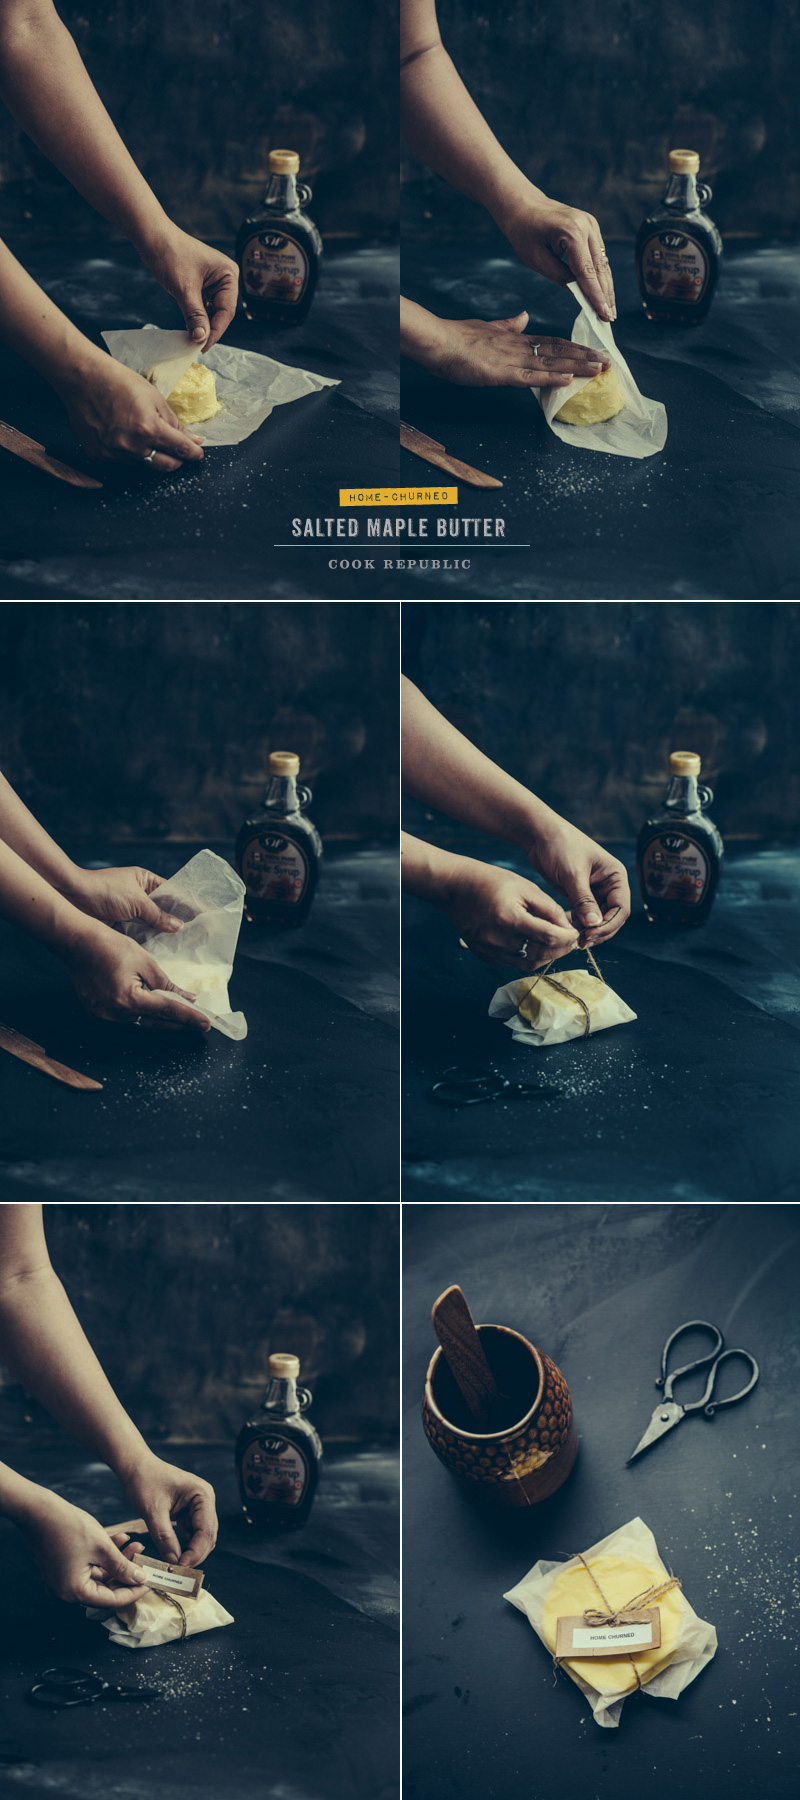 Wrapping Artisanal Home Made 15-Minute Butter - Sneh Roy, photo.